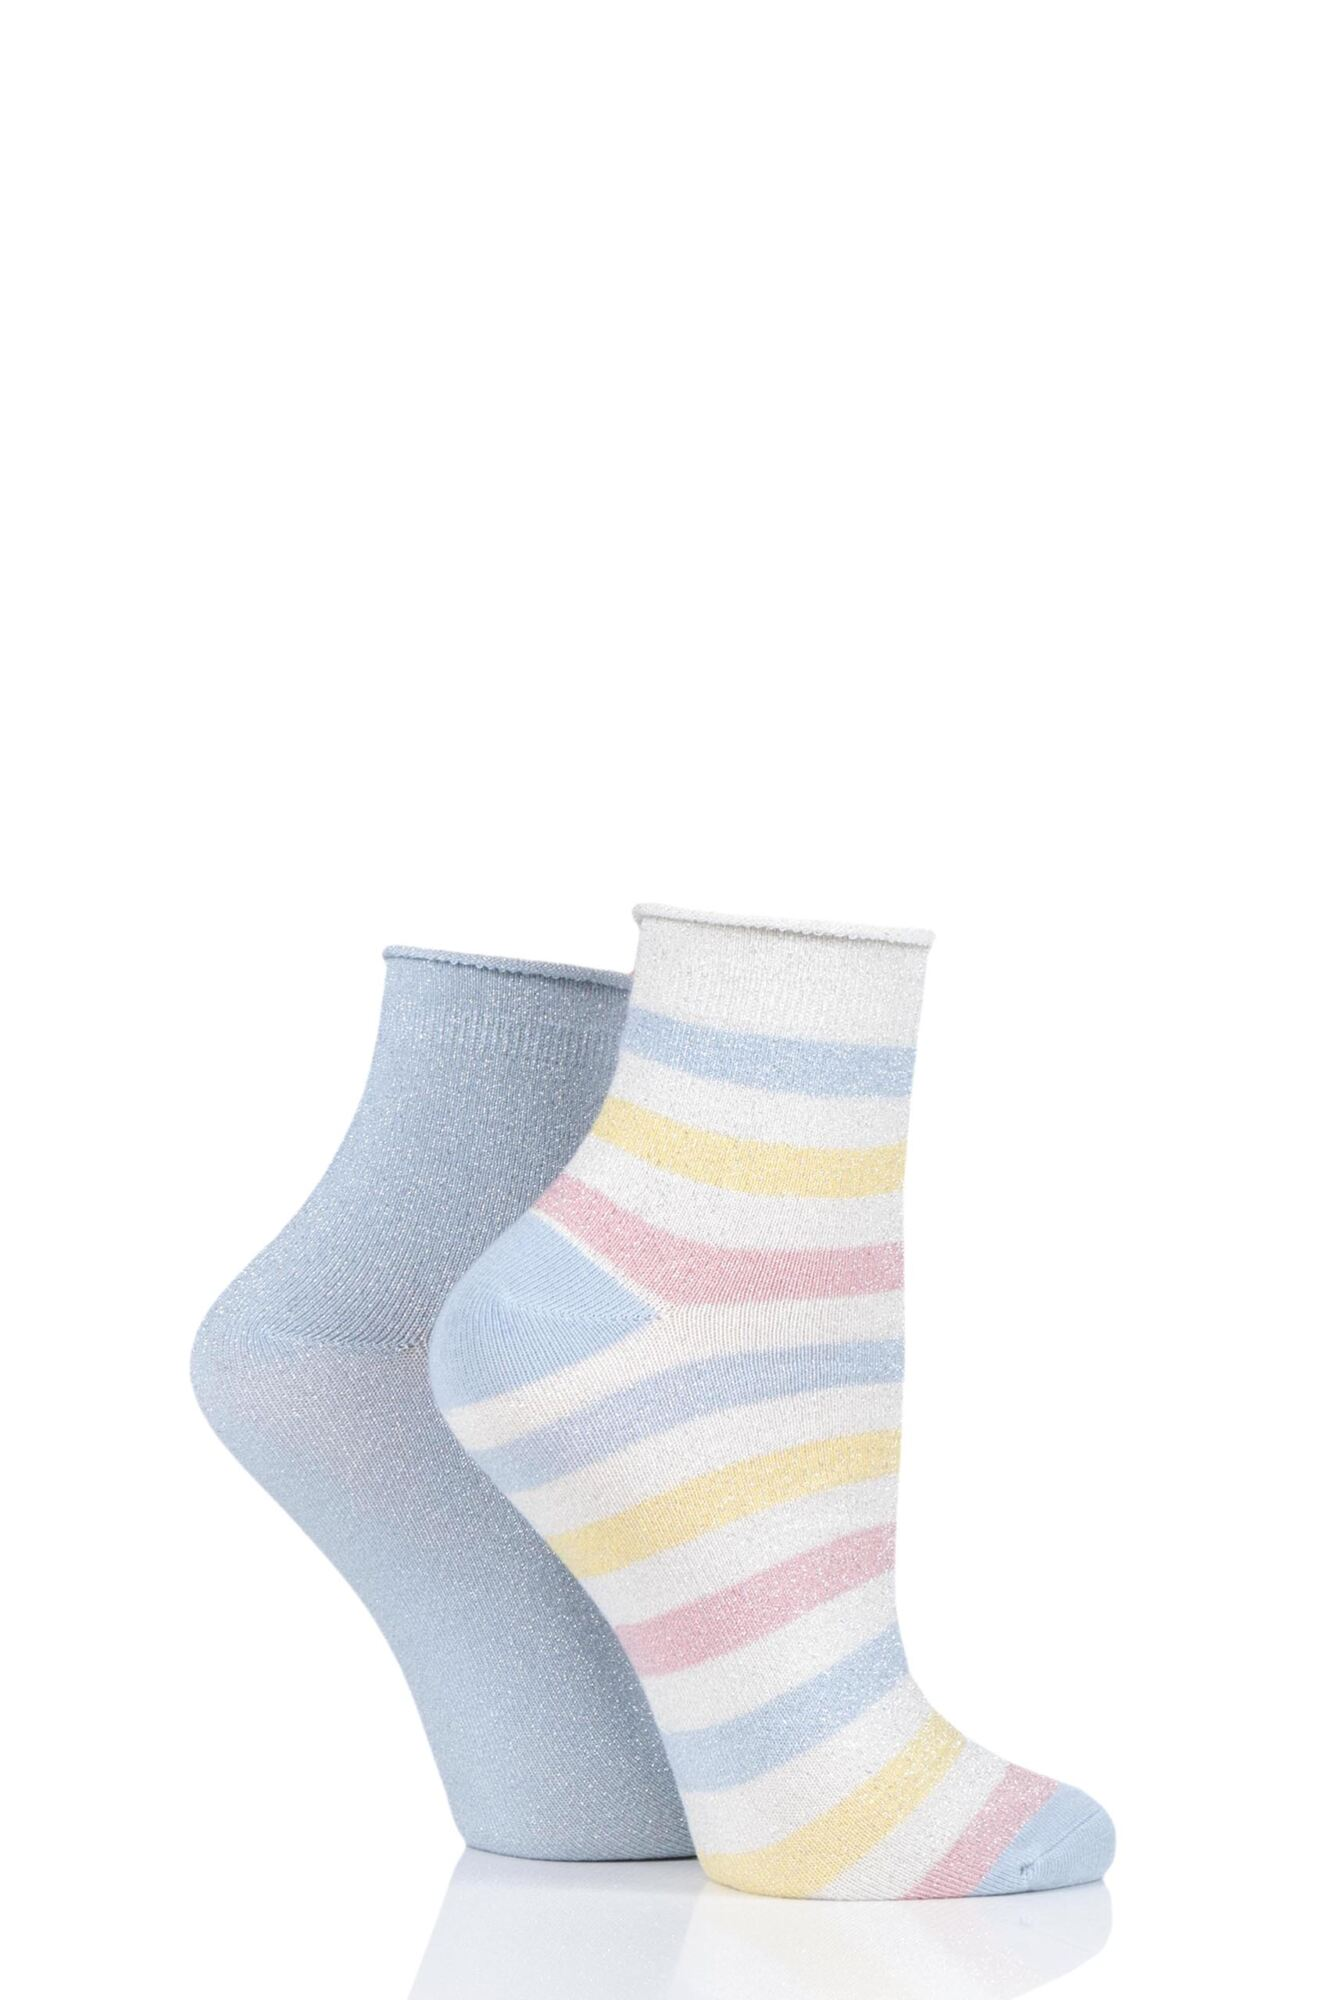 2 Pair Ombre Lurex Stripe Roll Top Anklet Socks Ladies - Elle